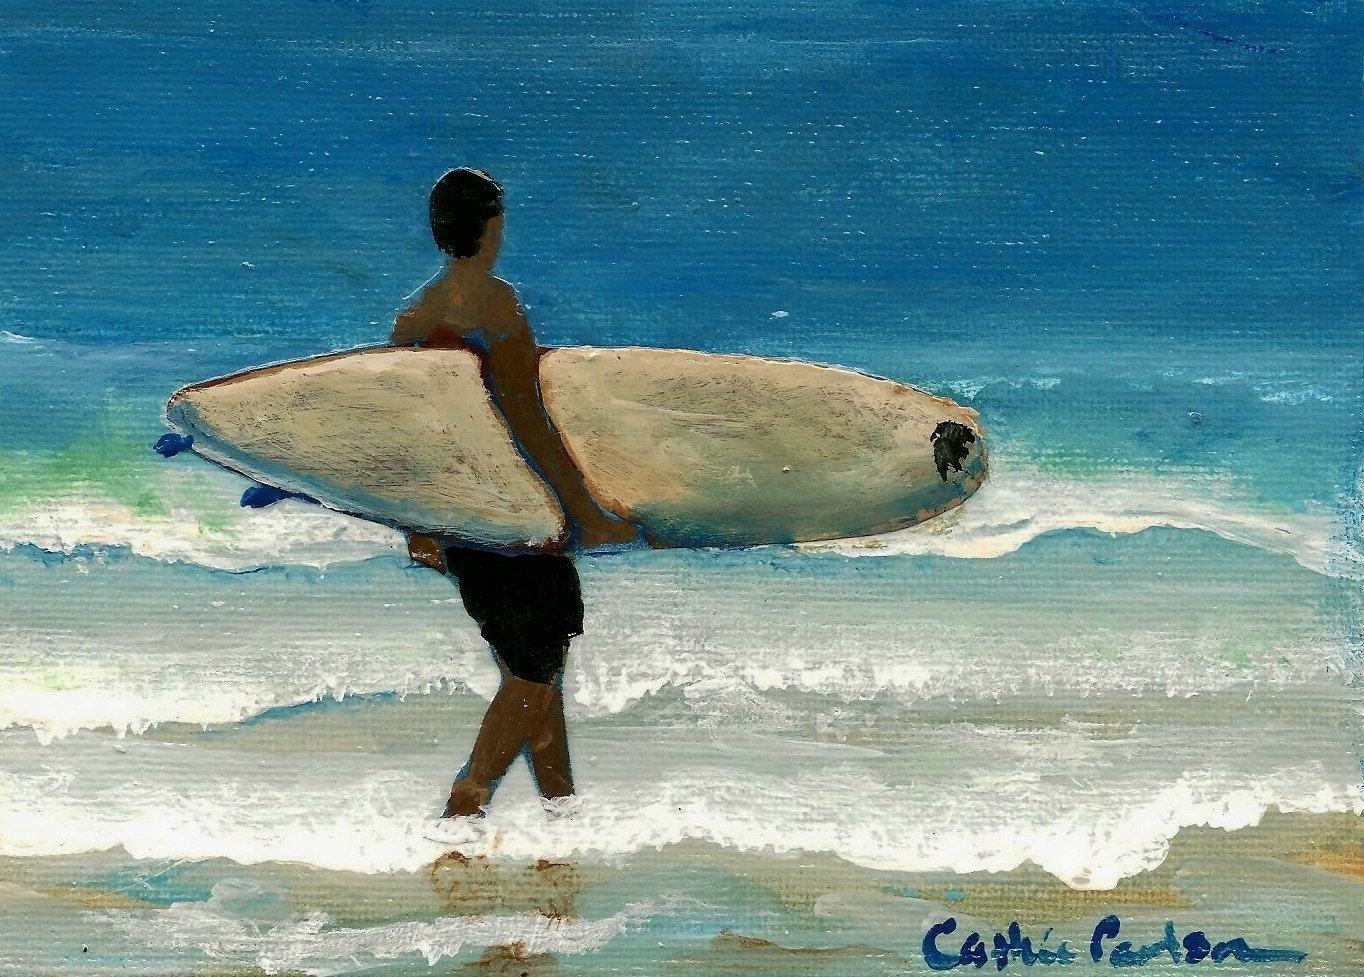 Surfer - Original Painting on 8 x 10 inch Canvas